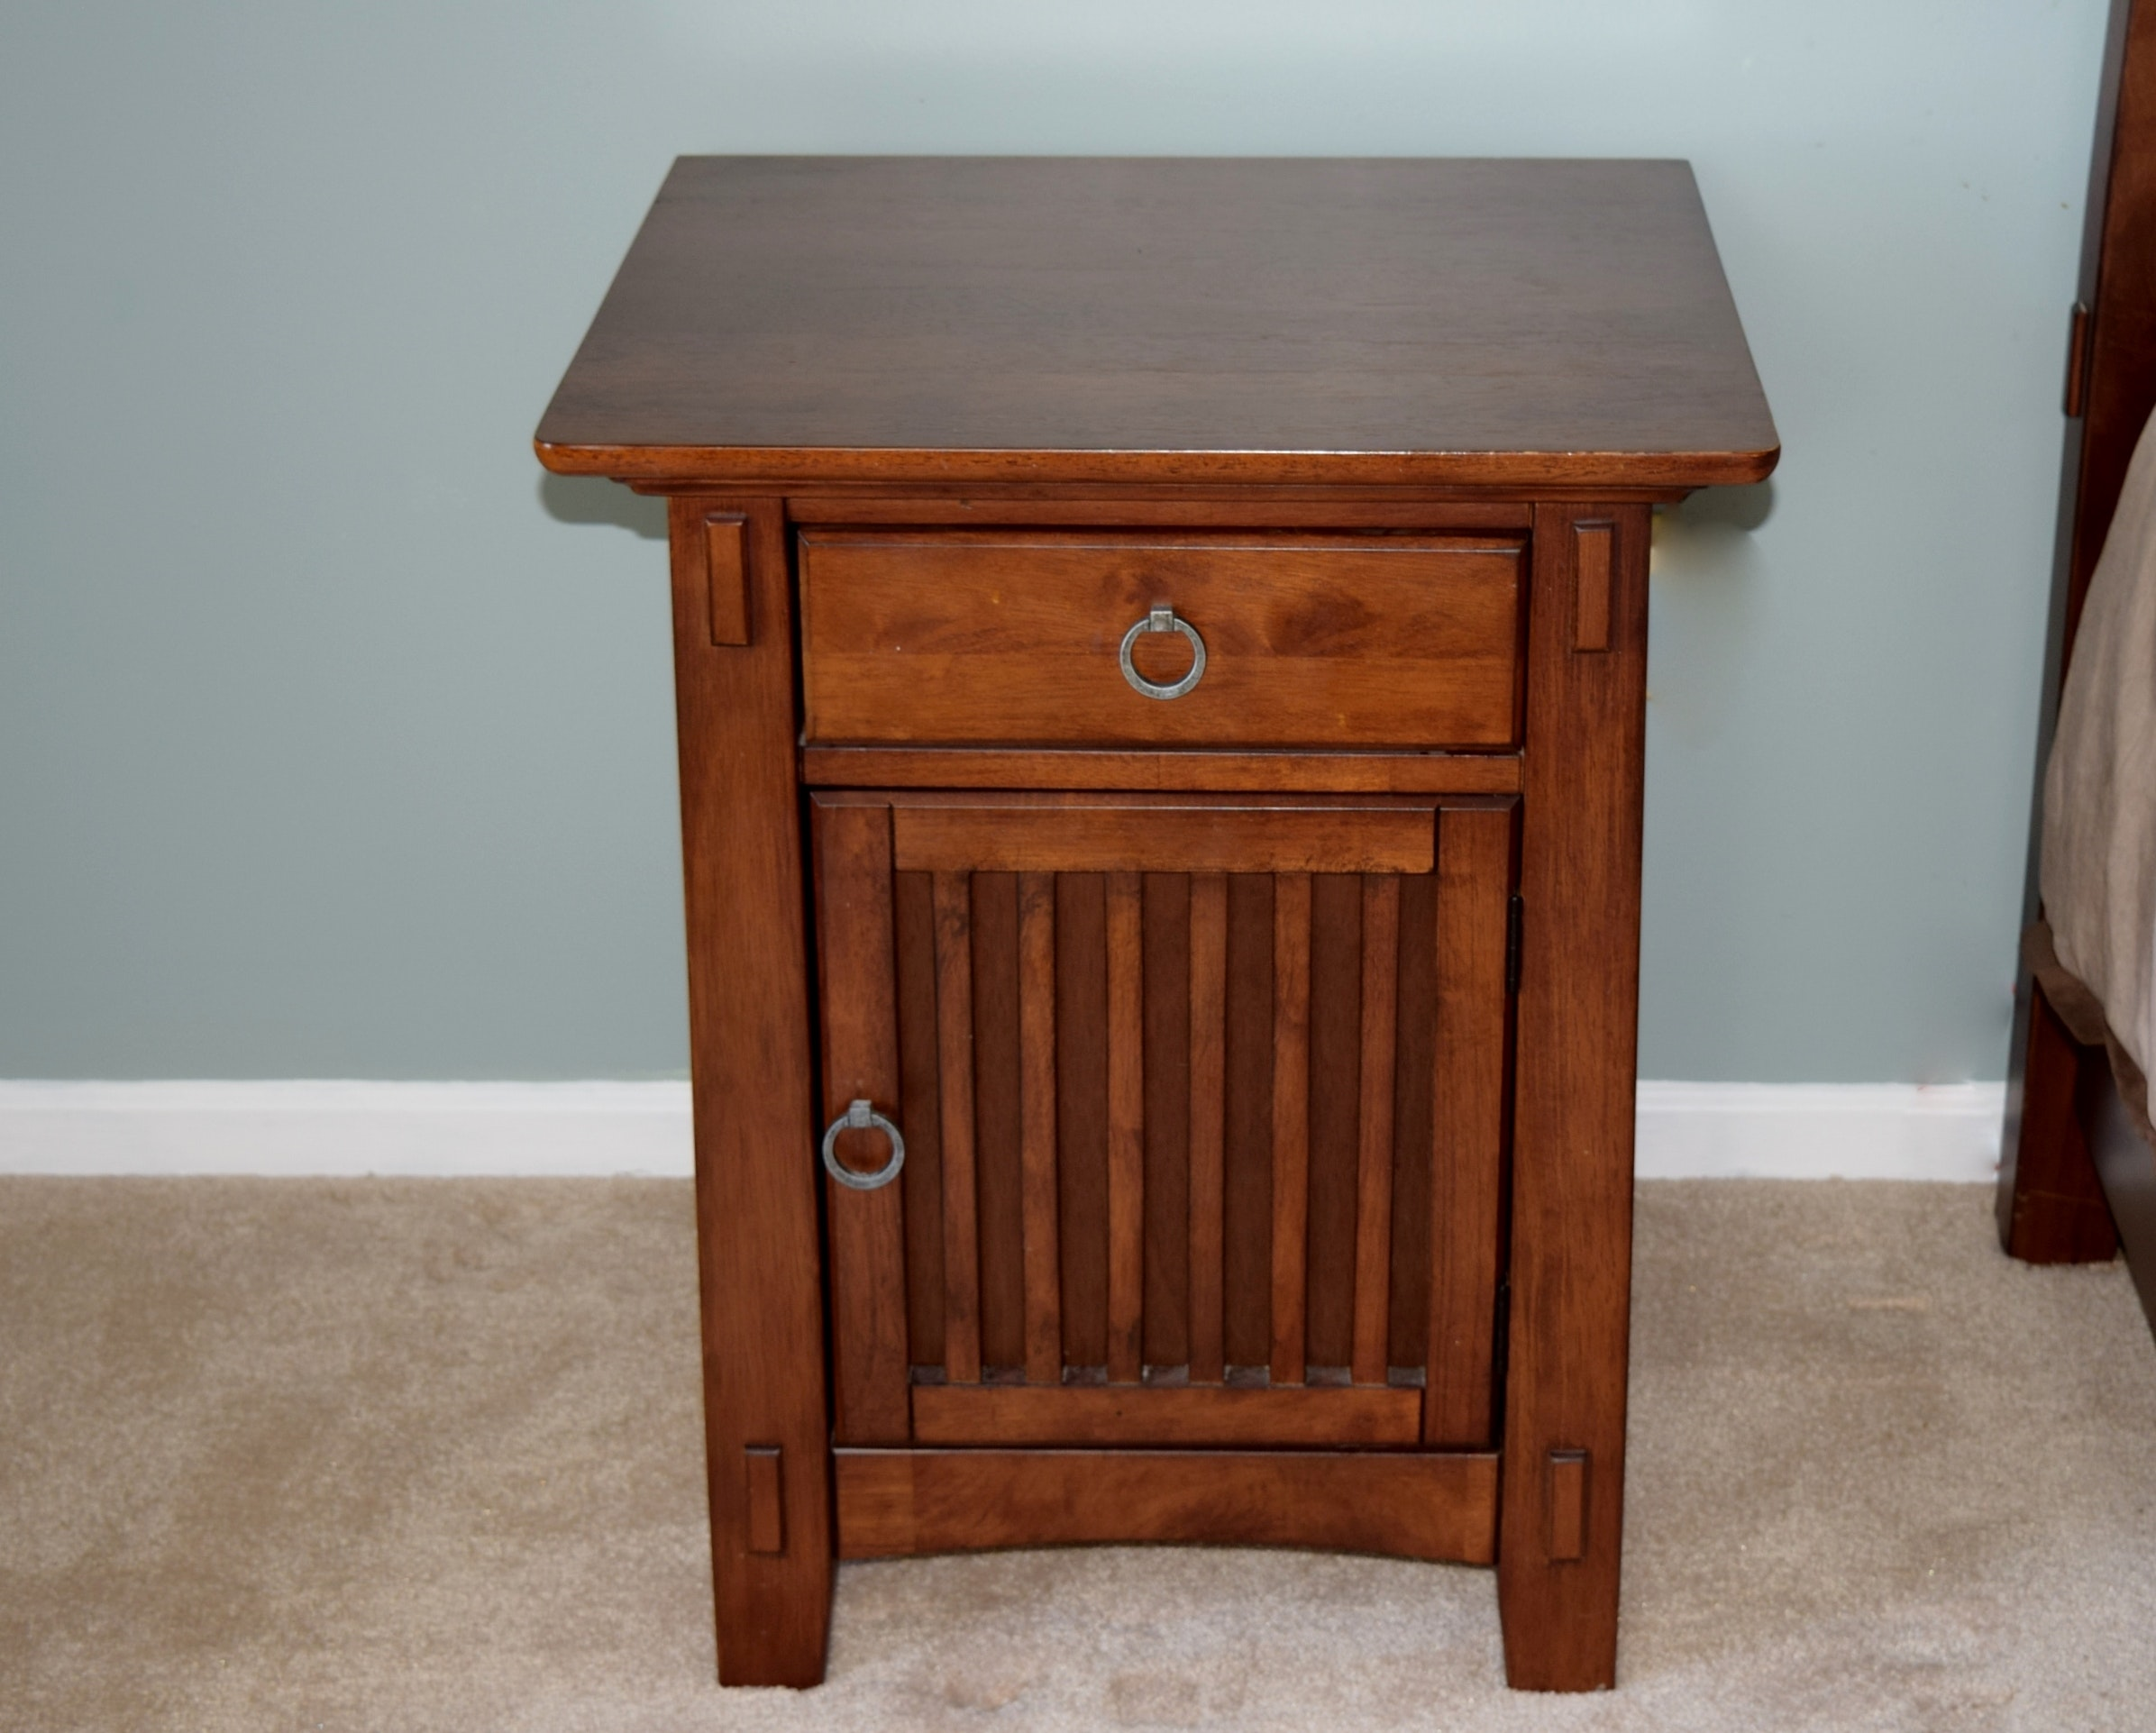 American Signature Arts and Crafts Bedroom Nightstand